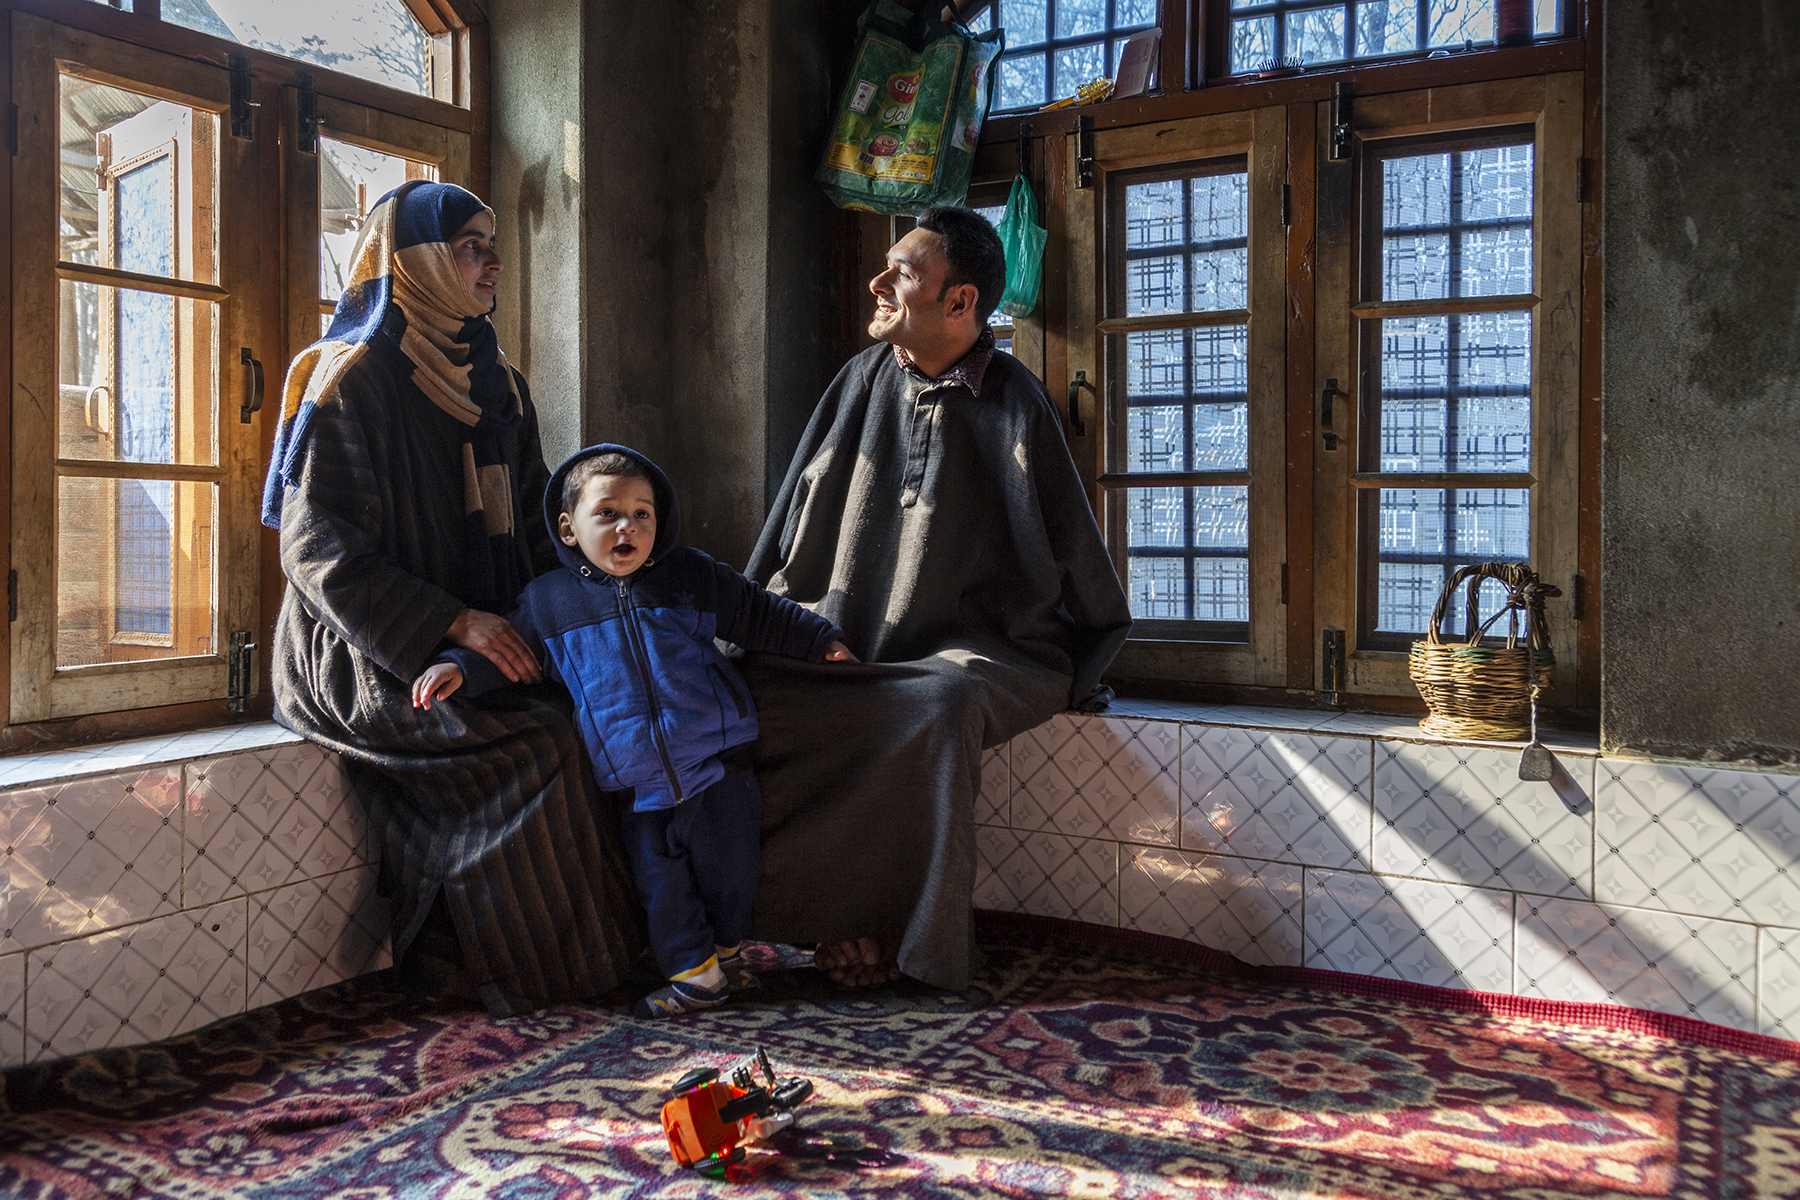 Amir with his family in a corner of a room with two large windows at right angles to each other. Amir is sitting on the sill of the window on the right, smiling and facing his wife Shokhi sitting on the other window sill. Their son Imaad is standing between them. The sun is shining on Amir's face through the glass panes. He wears an ankle-length grey pheran, Shokhi is in a striped pheran and has a scarf wrapped around her head and shoulders, and Imaad wears a navy blue jacket with a hood and matching pants.